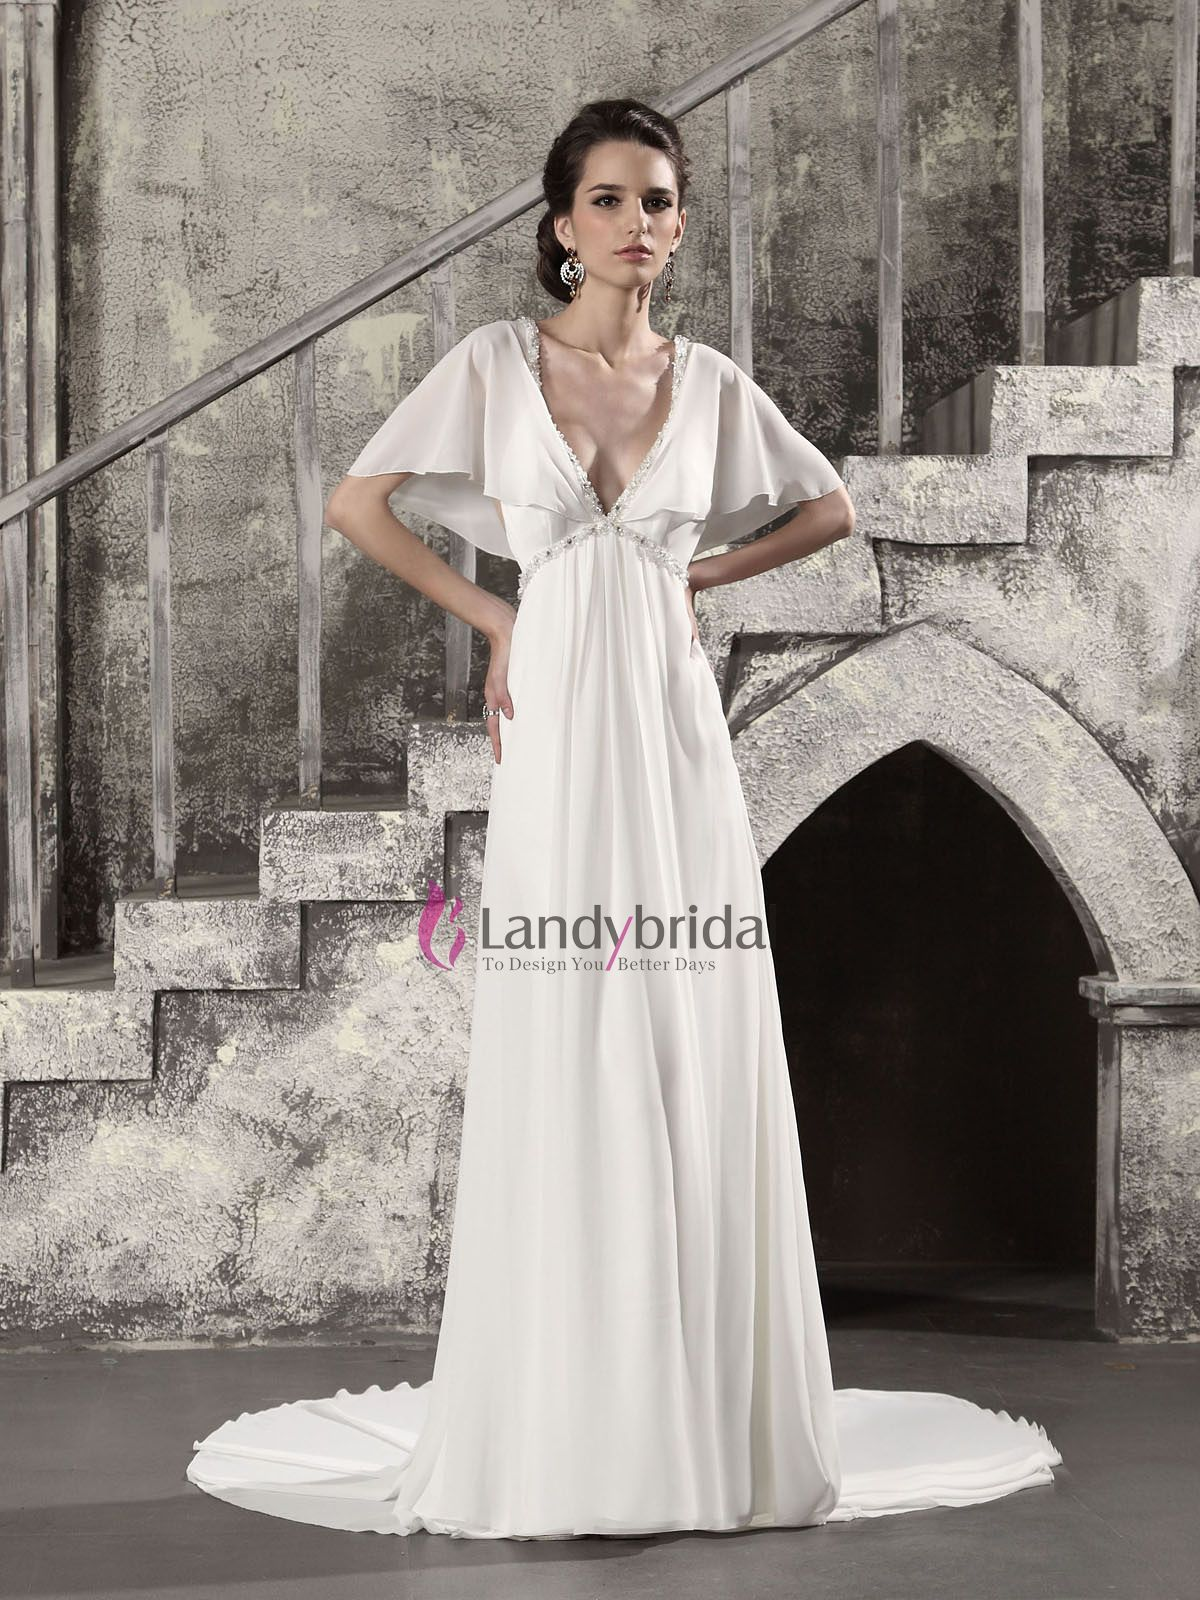 ru.landybridal.co/wedding-dresses/...